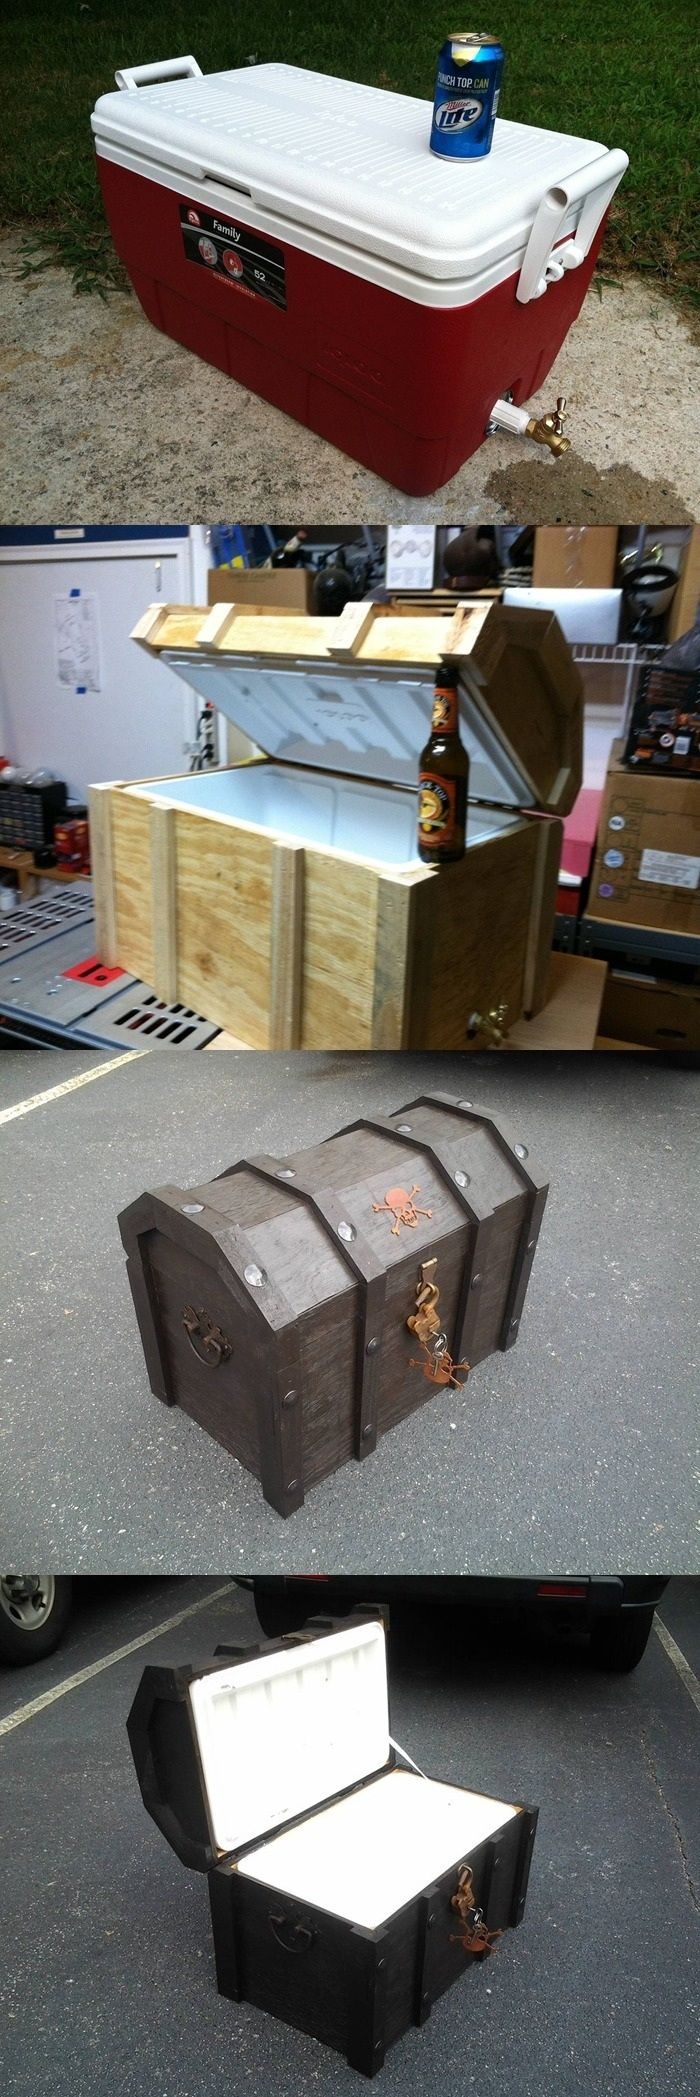 DIY Pirate Chest Cooler. This would be fun!  File under: Things I'll probably never do, but think are cool. ;)